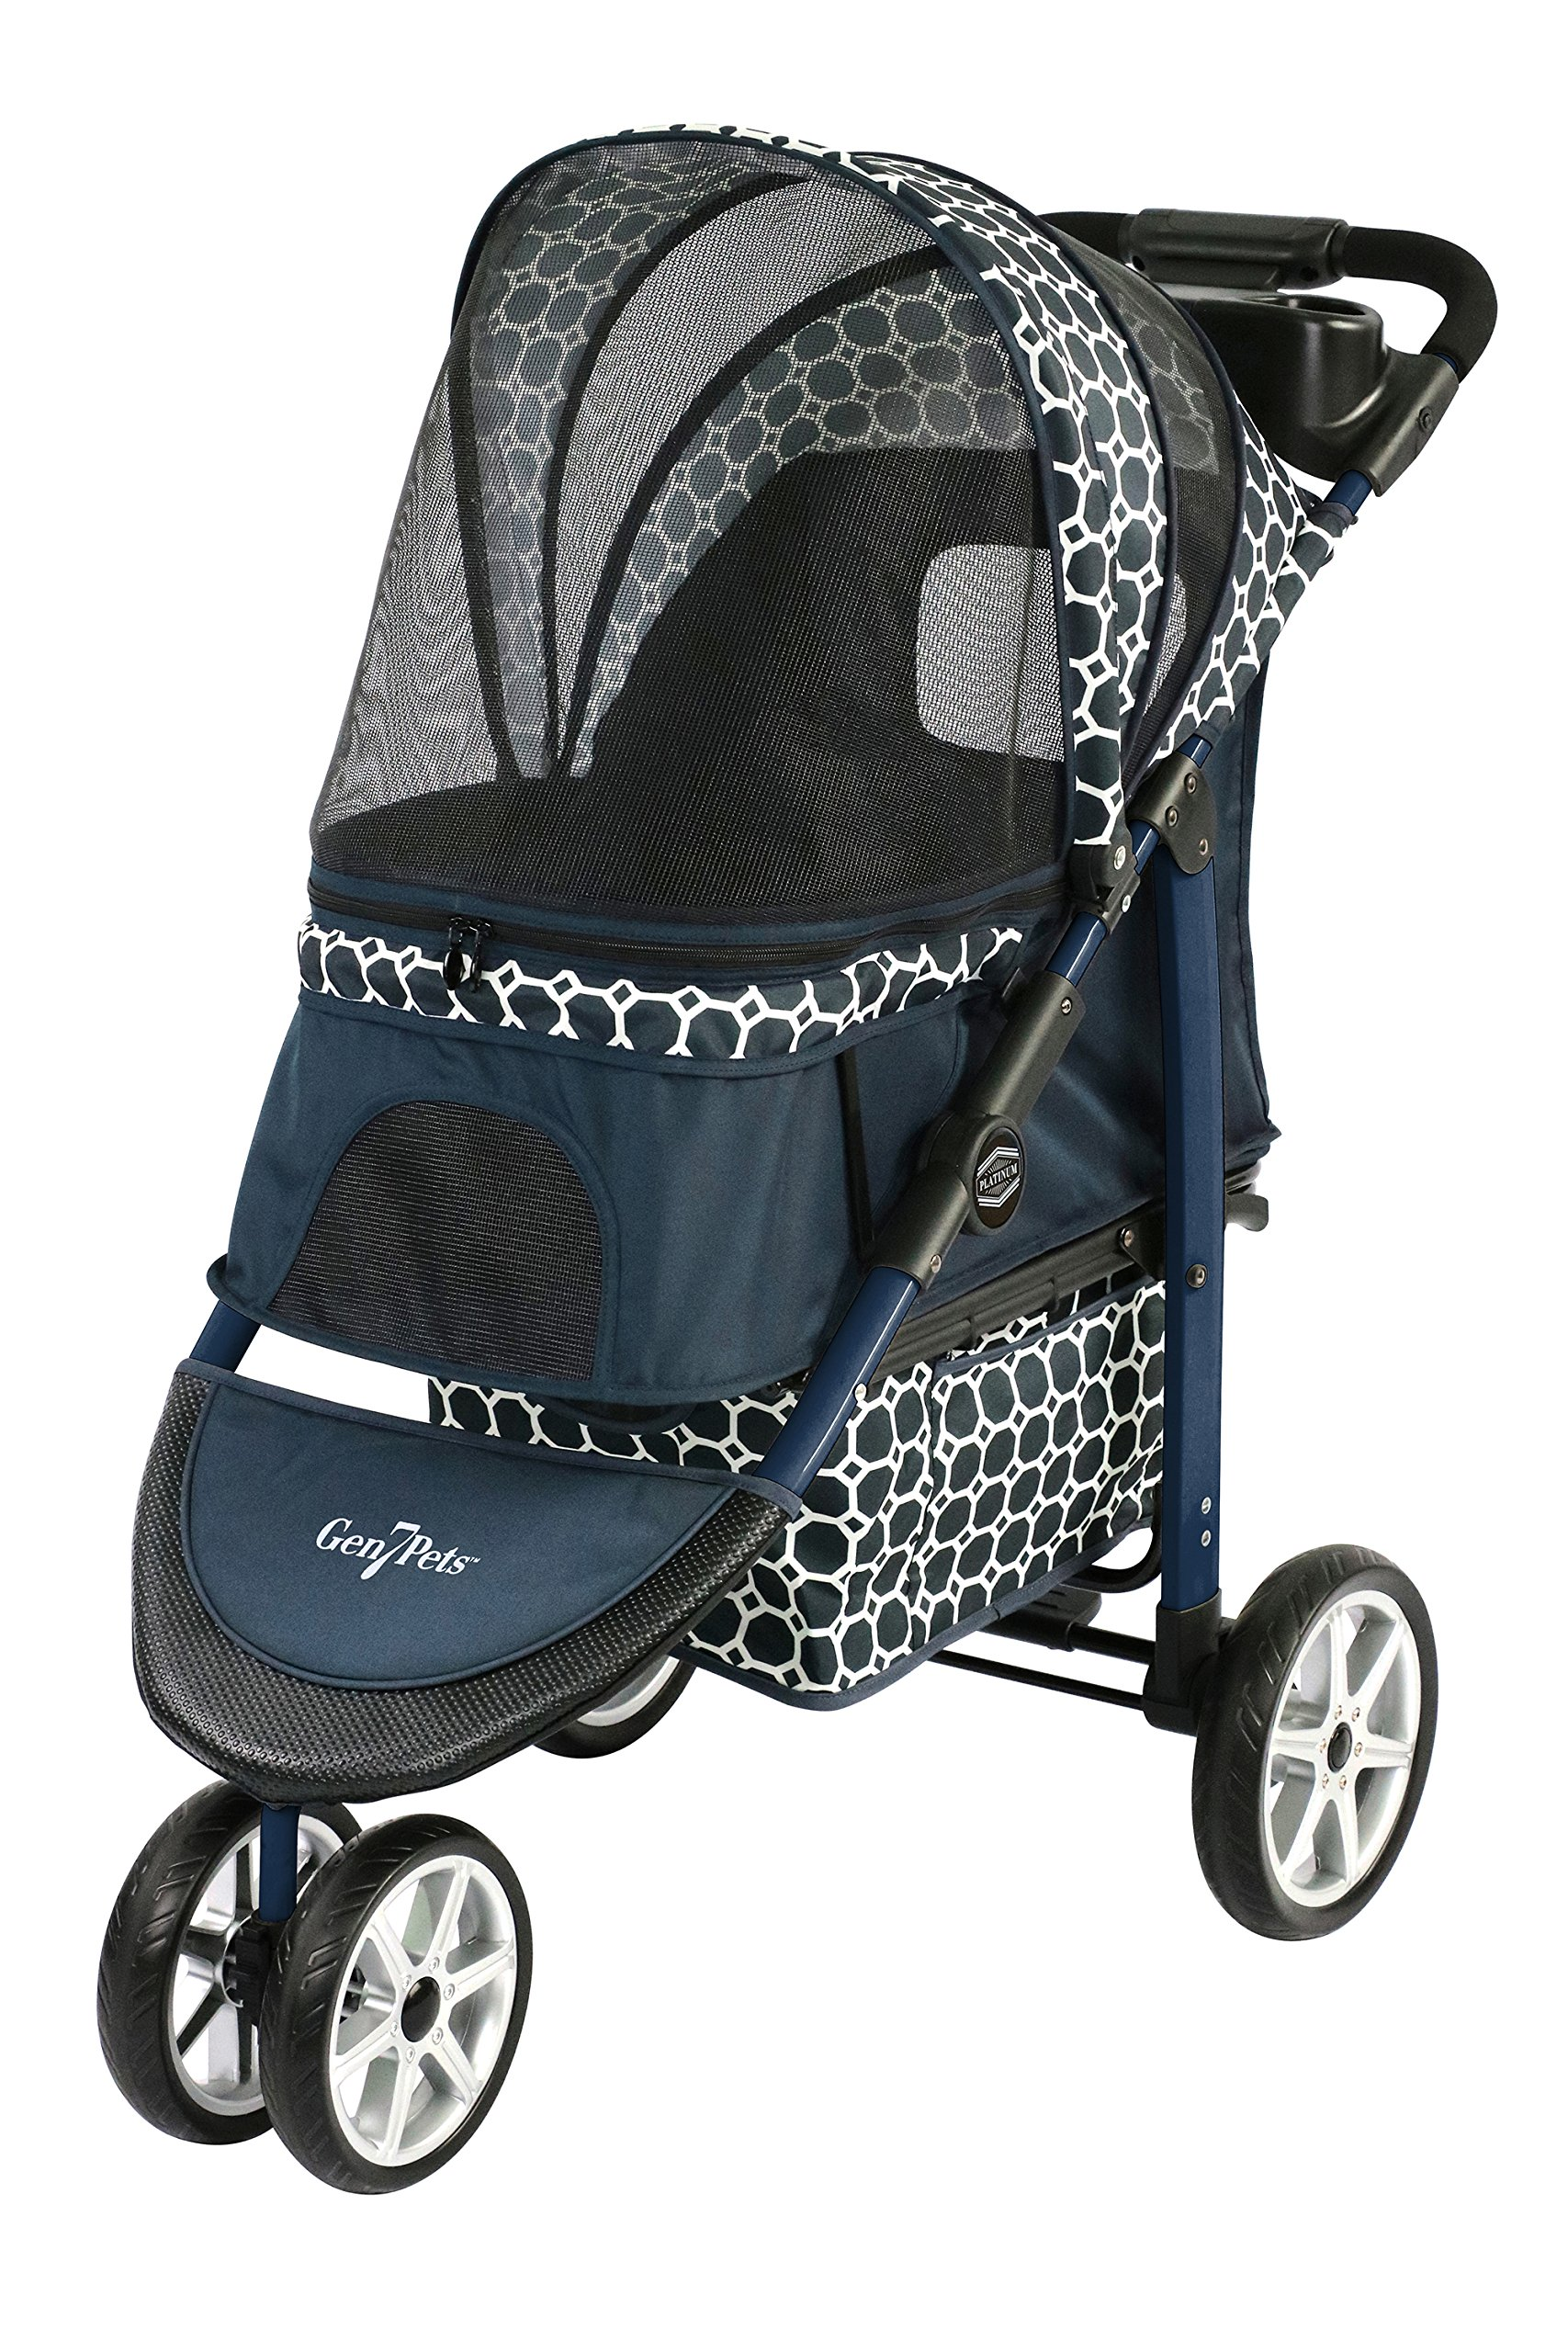 Gen7Pets Premium Monaco Stroller for Dogs and Cats up to 60lbs - Lightweight, All-Terrain and Portable by Gen7Pets